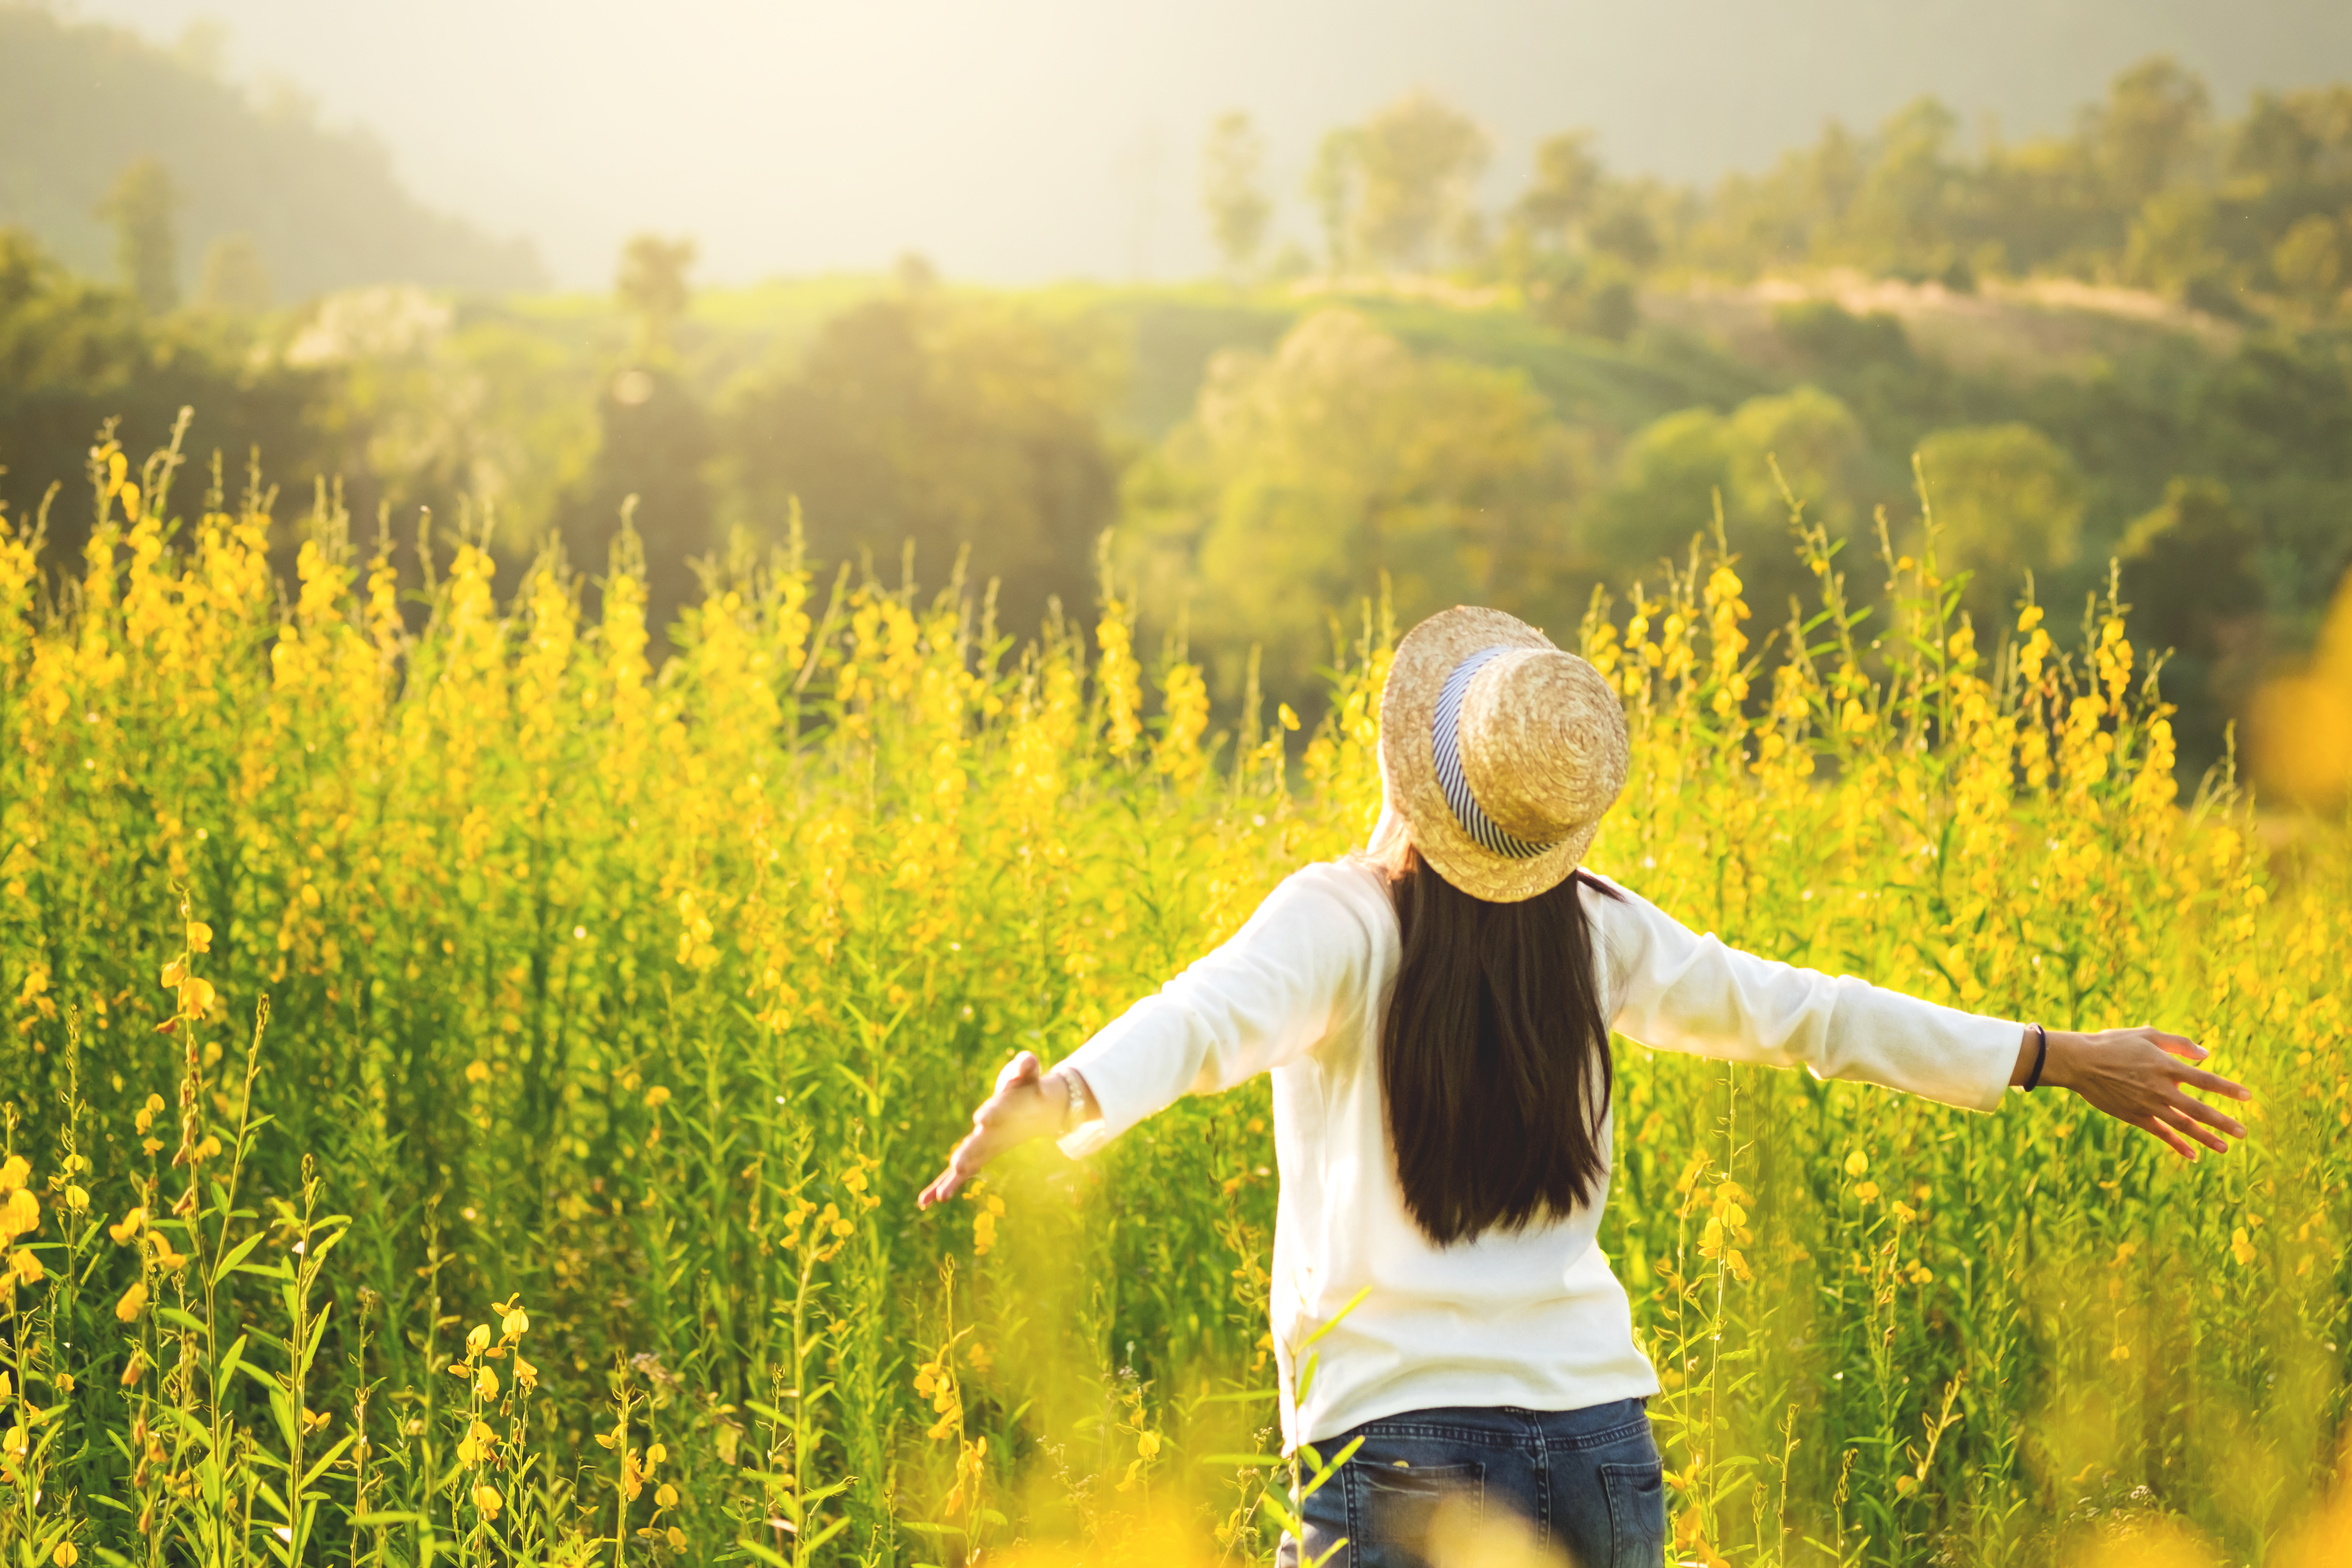 There are benefits of getting outside that could help your mental health during COVID-19